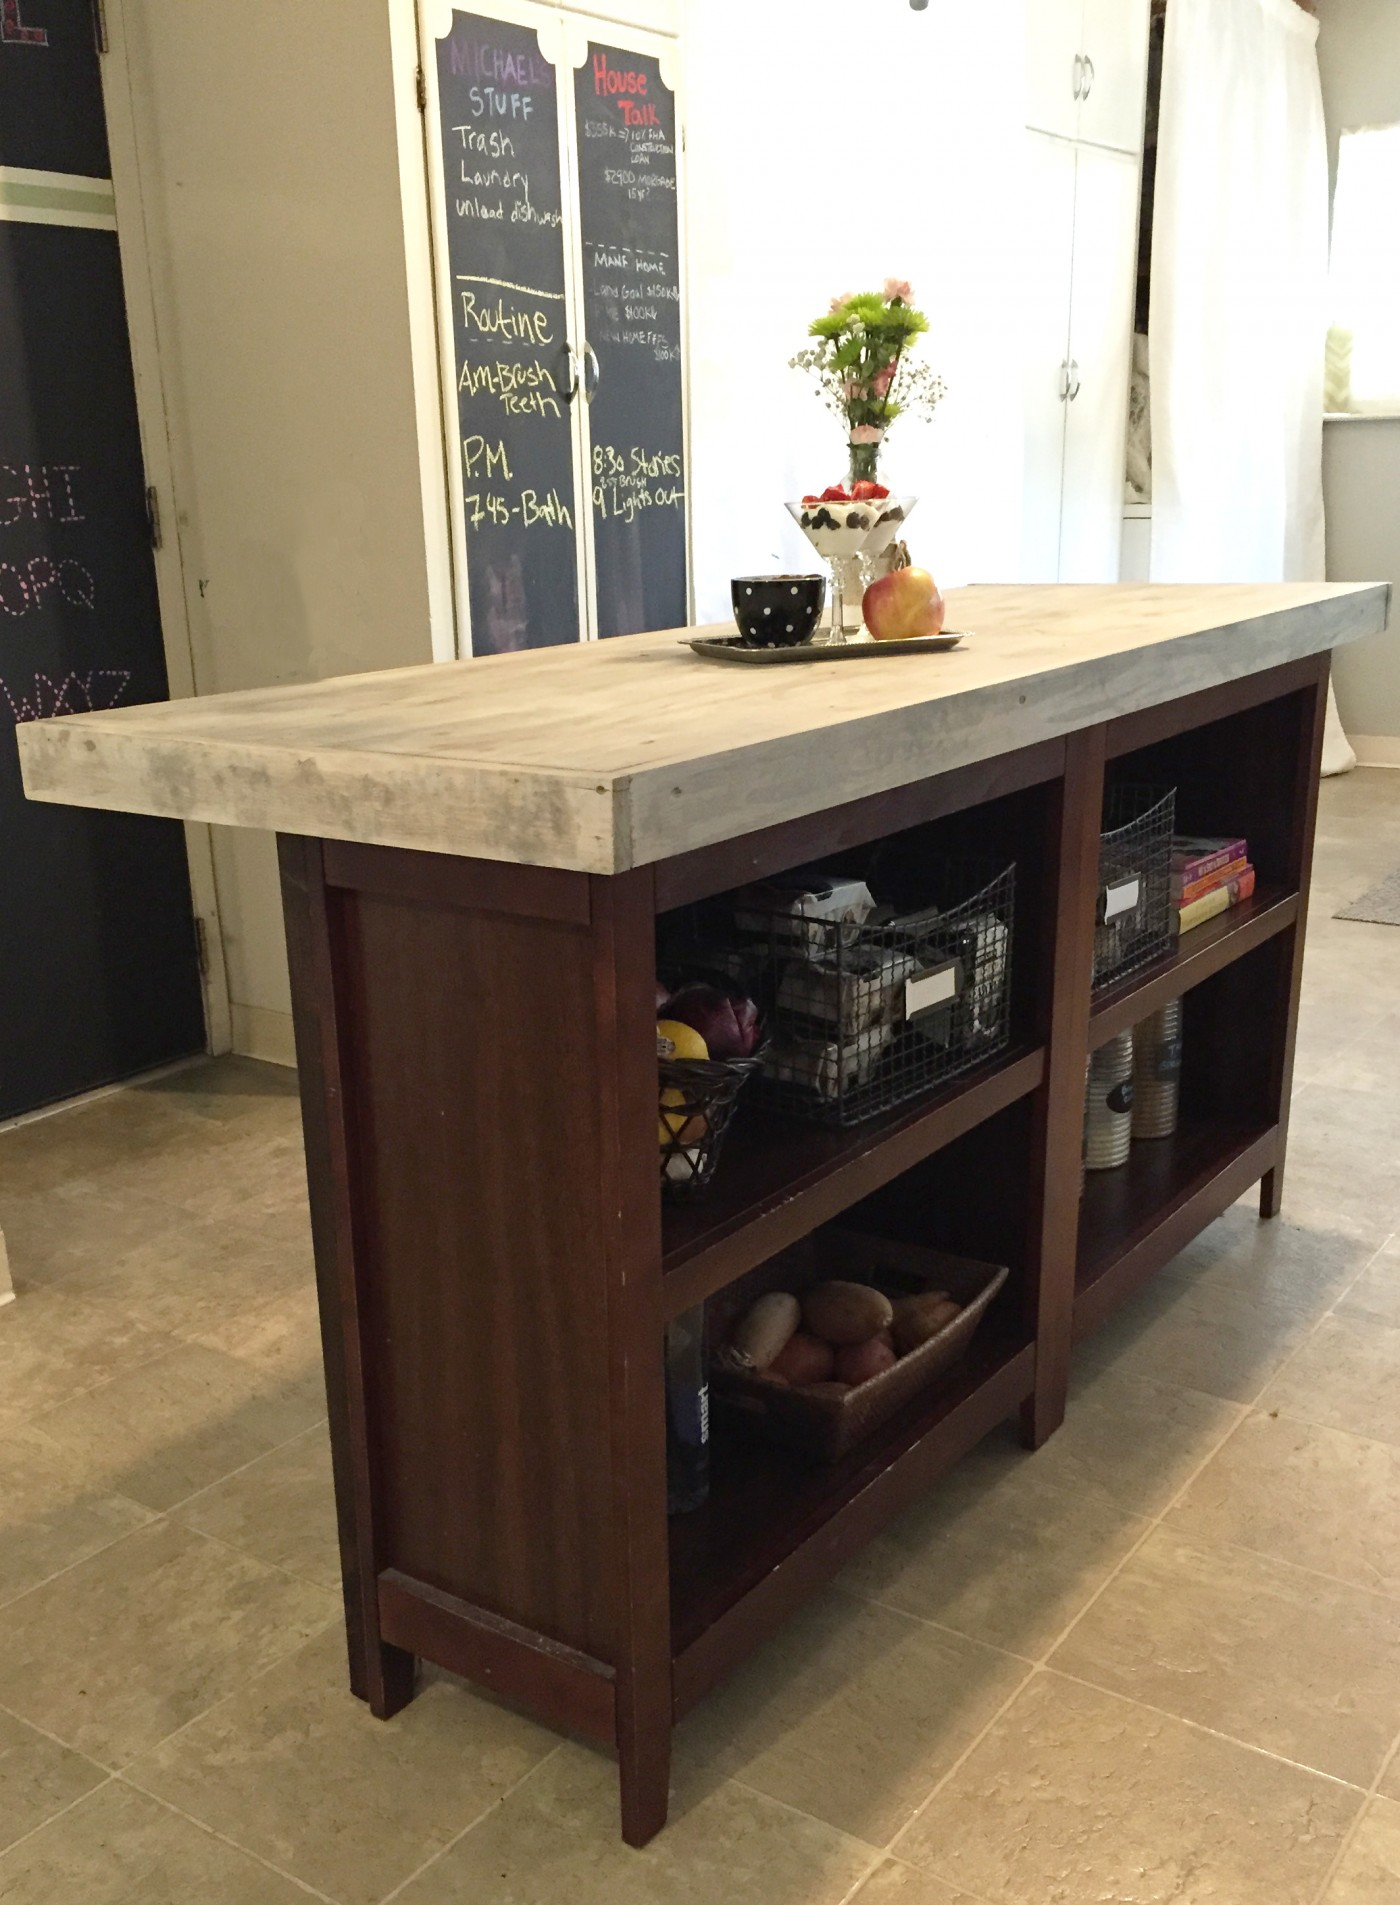 Home Made Kitchen Island Diy Kitchen Island From Bookcases | Jlm Designs